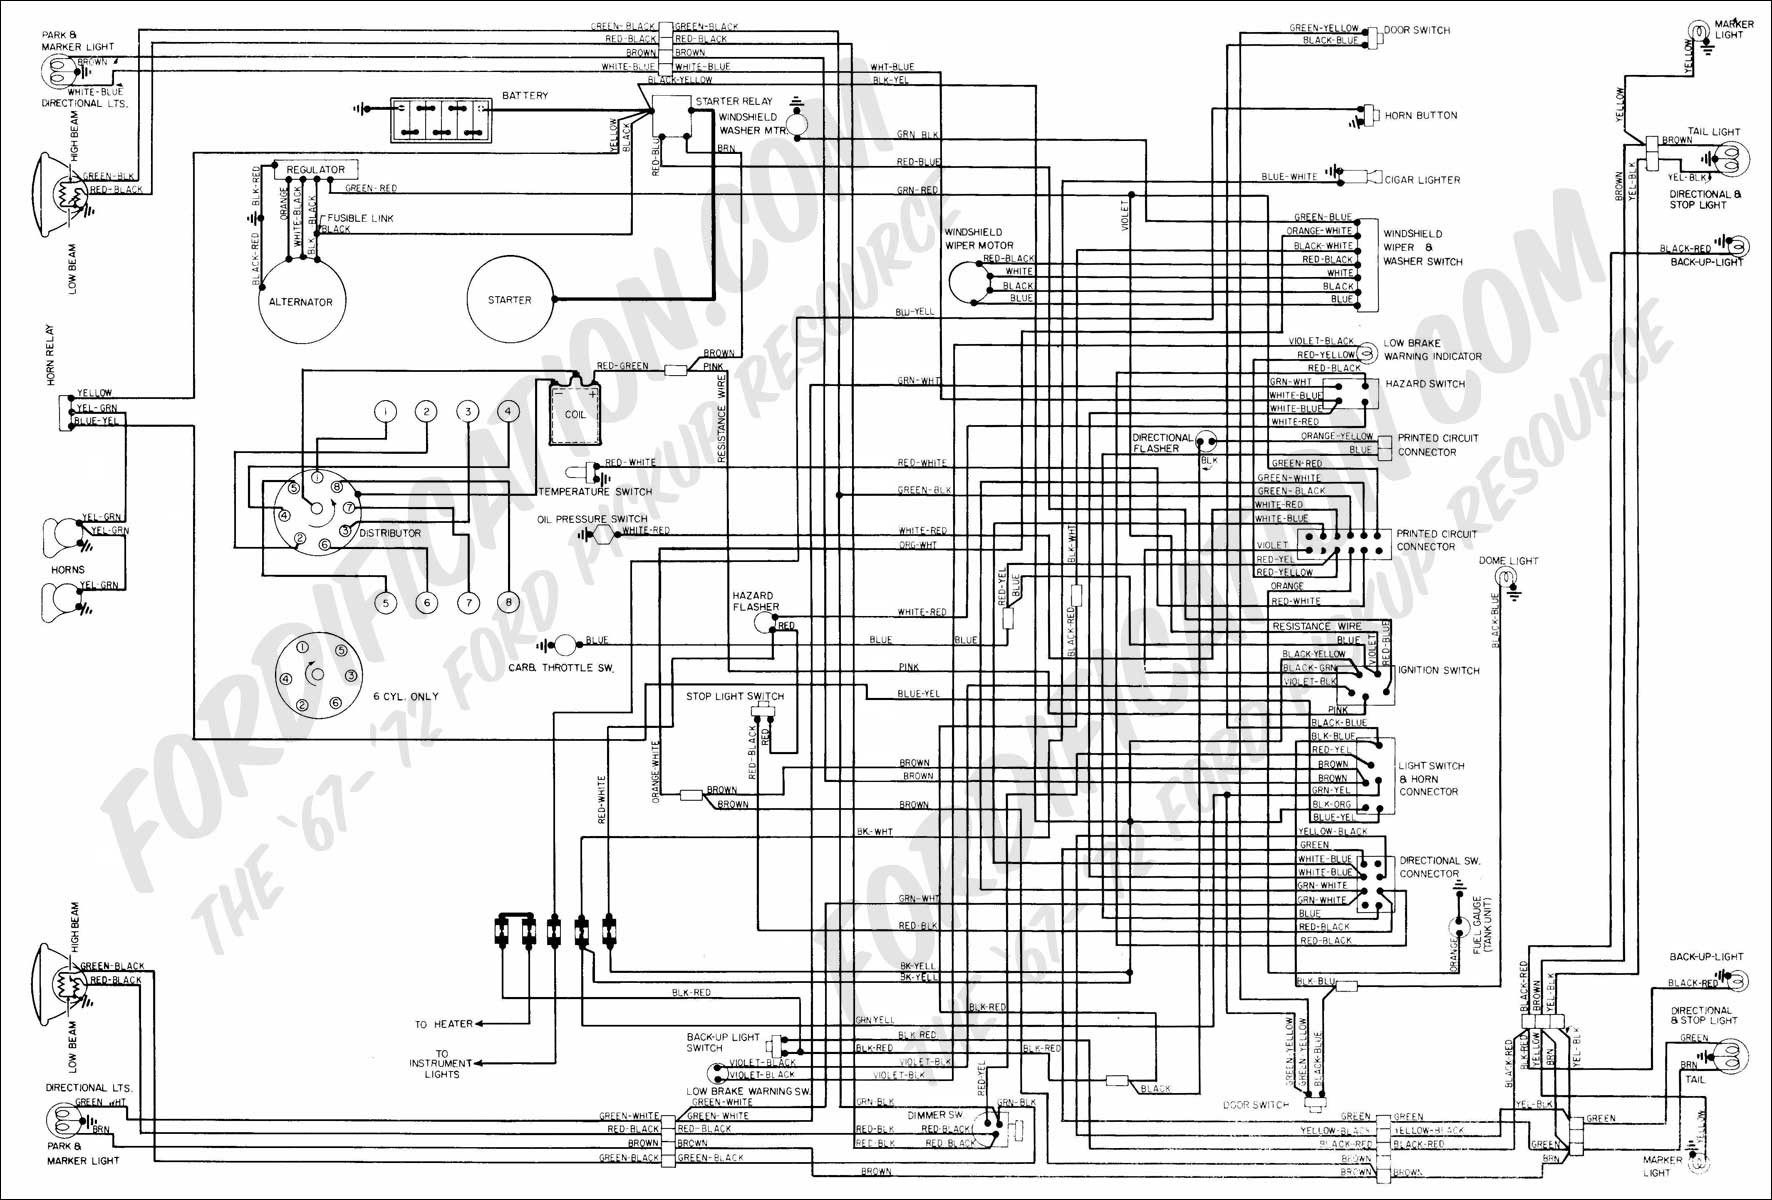 2004 Ford Focus Engine Diagram Simple Guide About Wiring Pats F350 6 Lenito Rh Detoxicrecenze Com